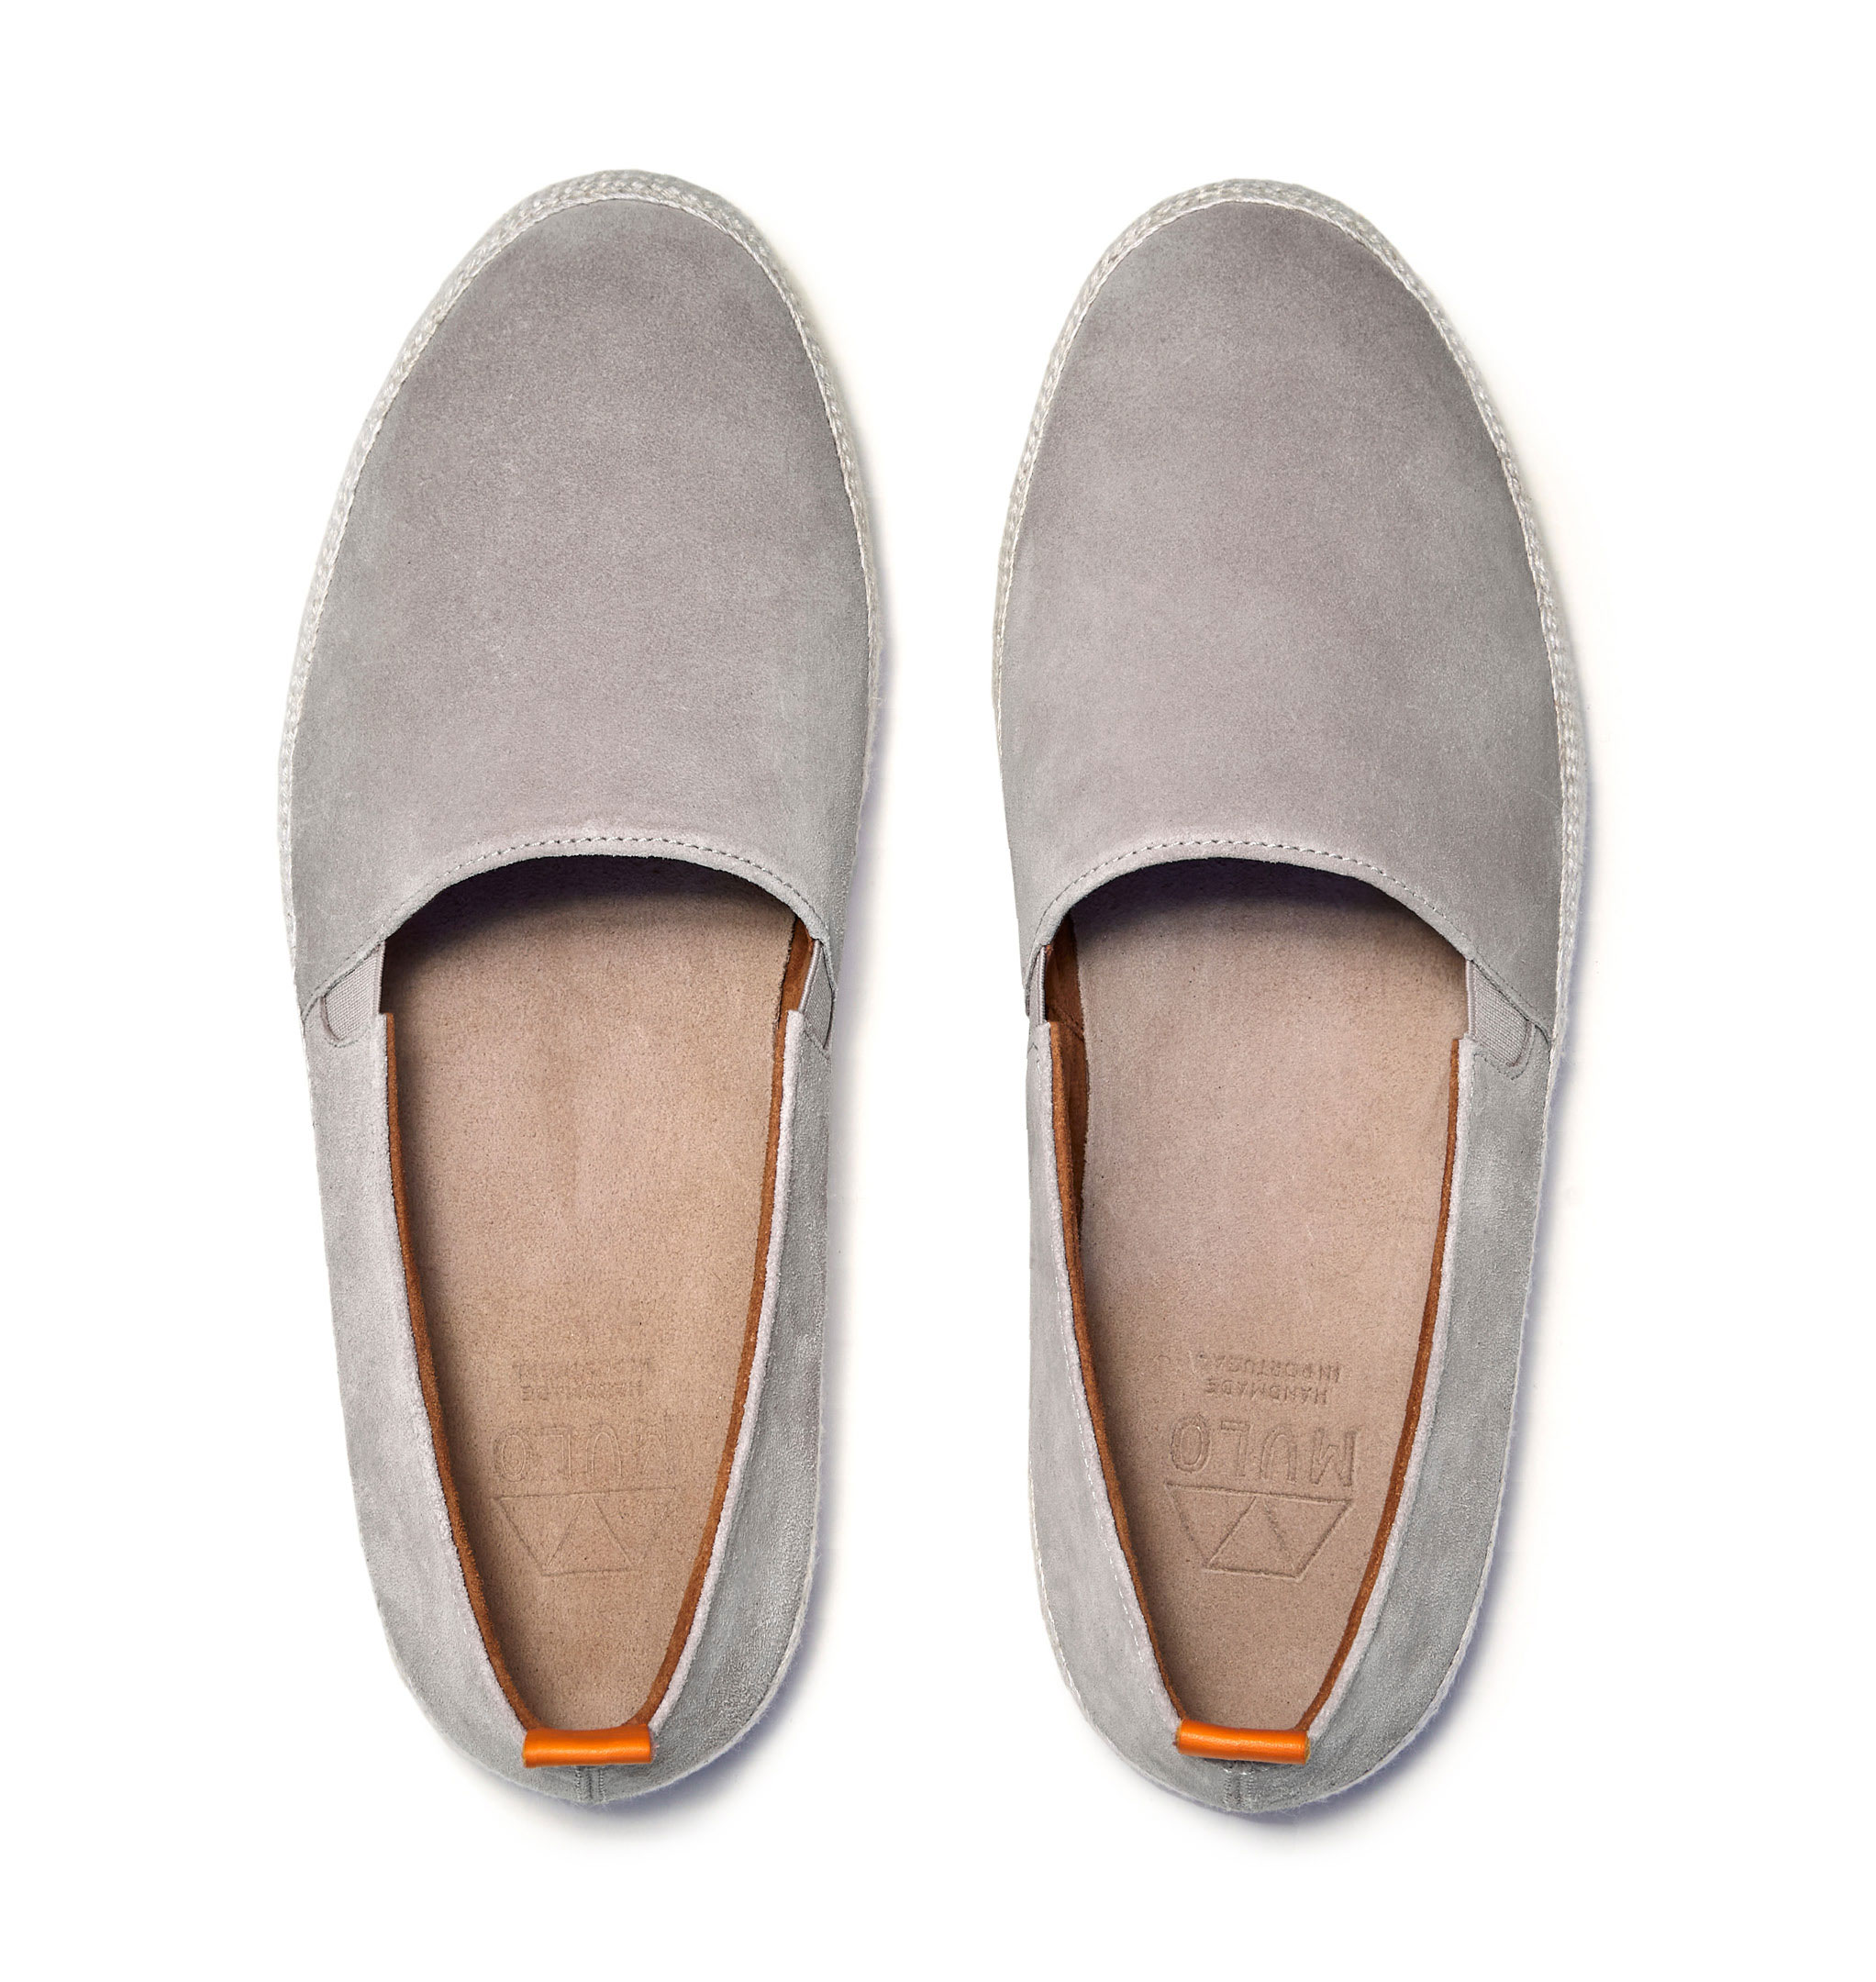 Mens Espadrilles in Grey Suede